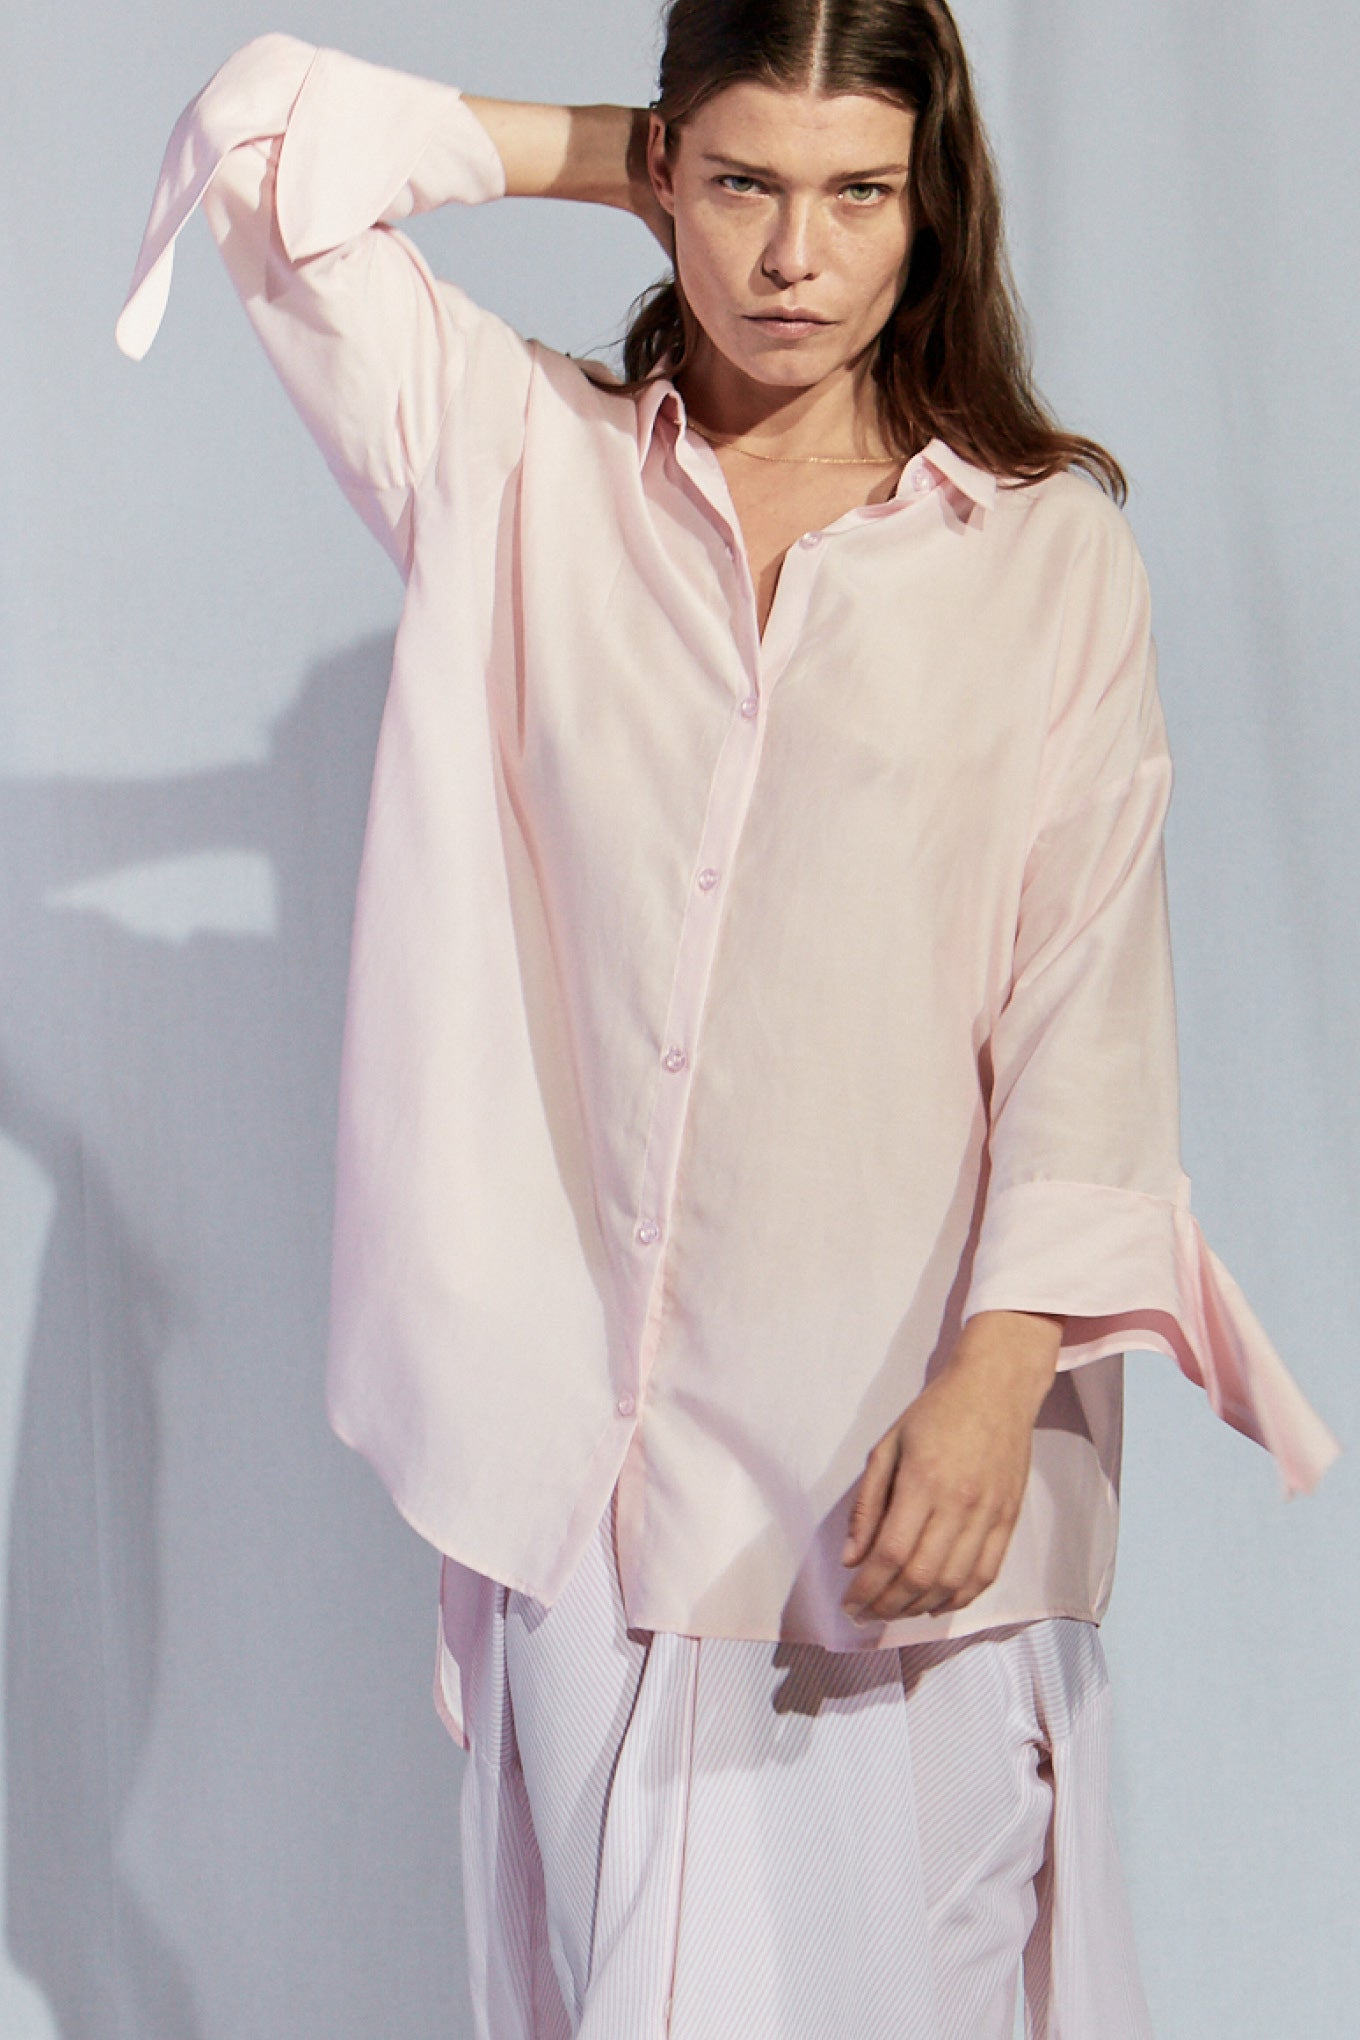 BIANCA BOW SHIRT - CANDY PINK - SILK/COTTON